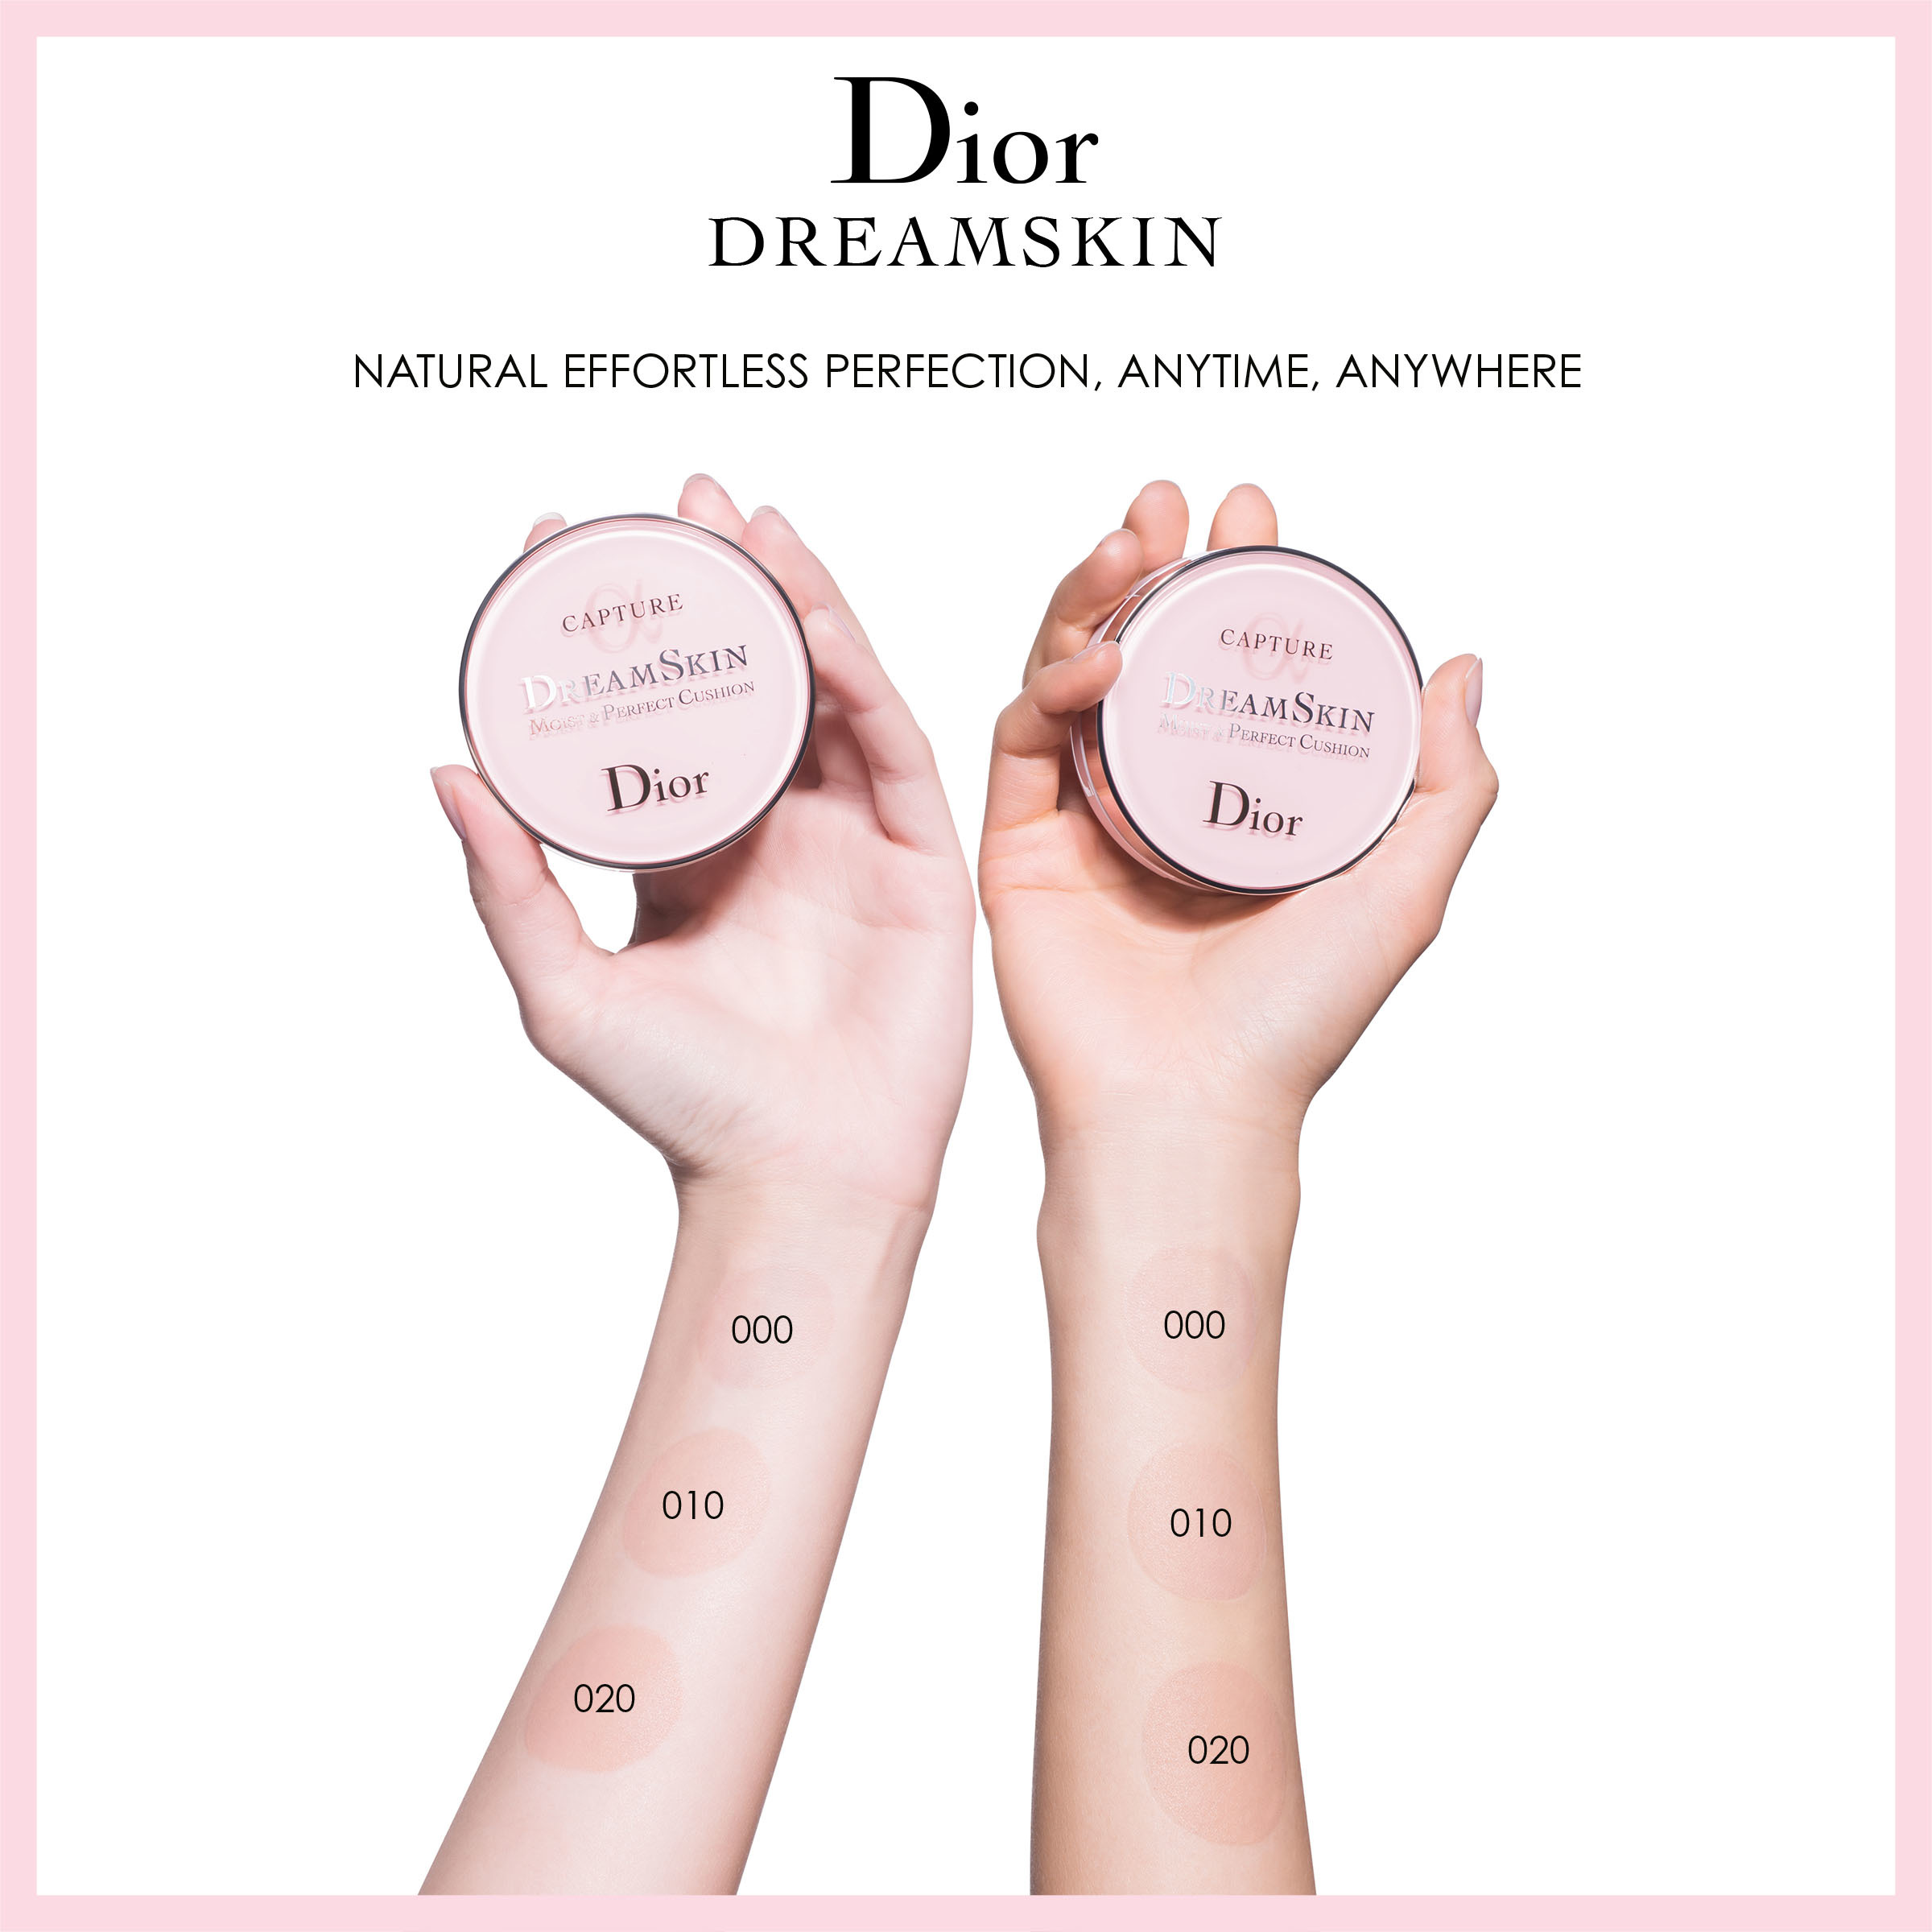 Capture Dreamskin Moist & Perfect Cushion 20